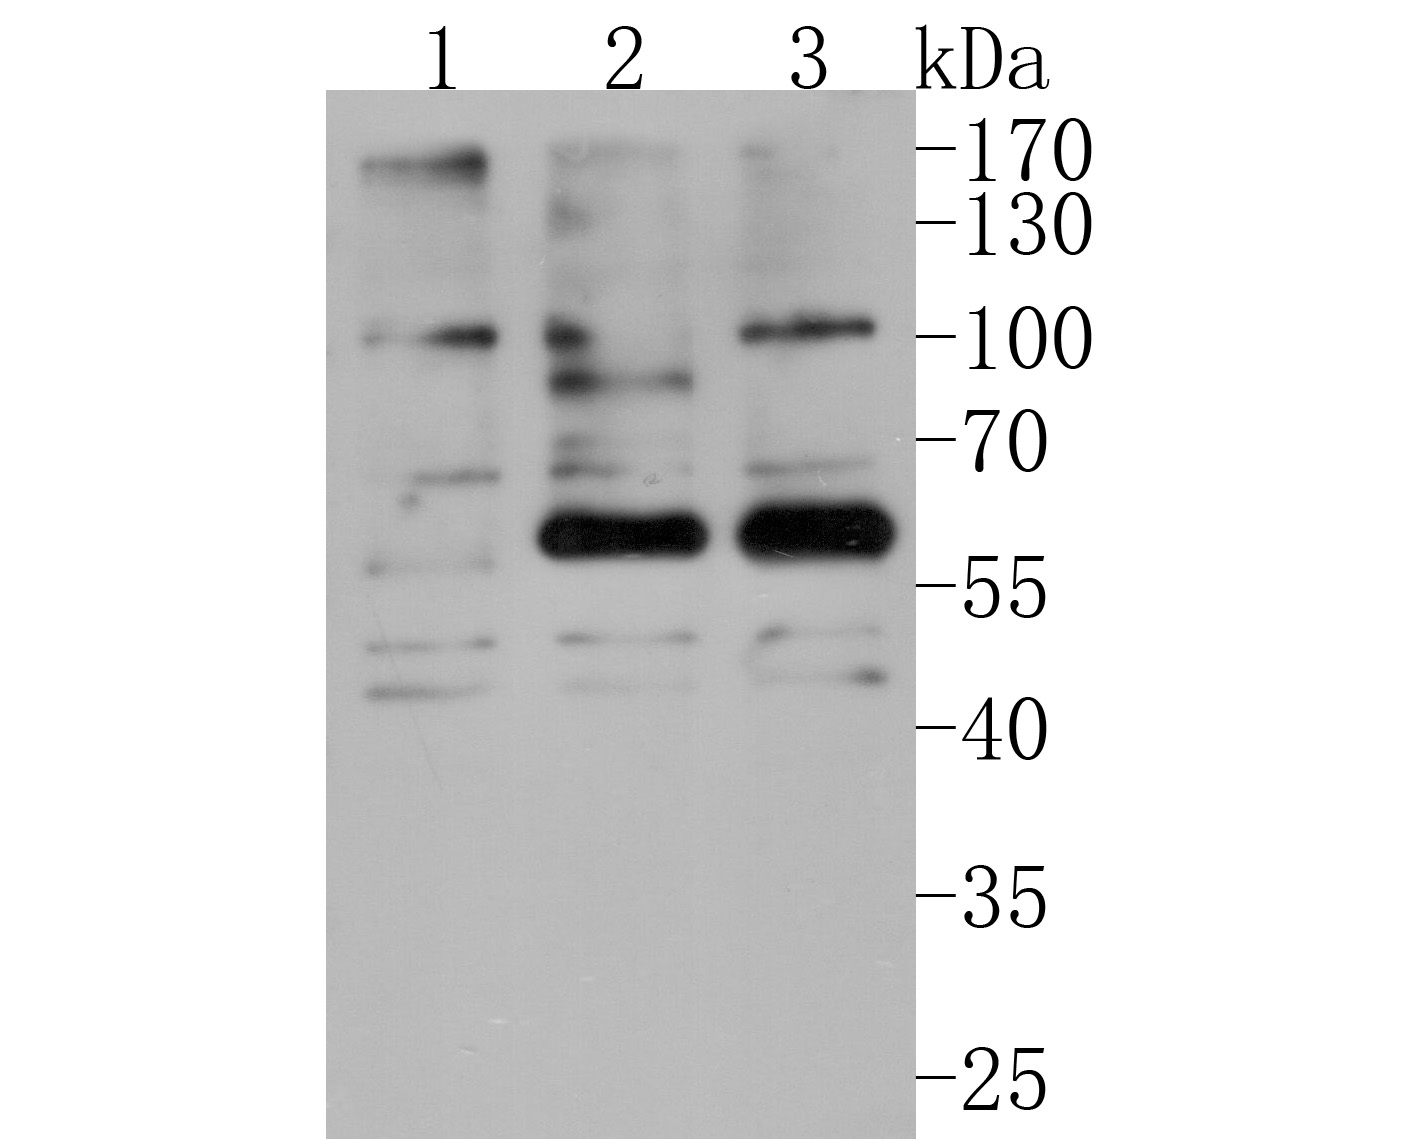 Western blot analysis of AKT2 (phospho S474) on different lysates. Proteins were transferred to a PVDF membrane and blocked with 5% BSA in PBS for 1 hour at room temperature. The primary antibody (HA500116, 1/1,000) was used in 5% BSA at room temperature for 2 hours. Goat Anti-Rabbit IgG - HRP Secondary Antibody (HA1001) at 1:200,000 dilution was used for 1 hour at room temperature.<br /> Positive control: <br /> Lane 1: Untreated Hela whole cell lysates<br /> Lane 2: Hela treated with Calyculin A whole cell lysates<br /> Lane 3: Hela treated with insulin whole cell lysates